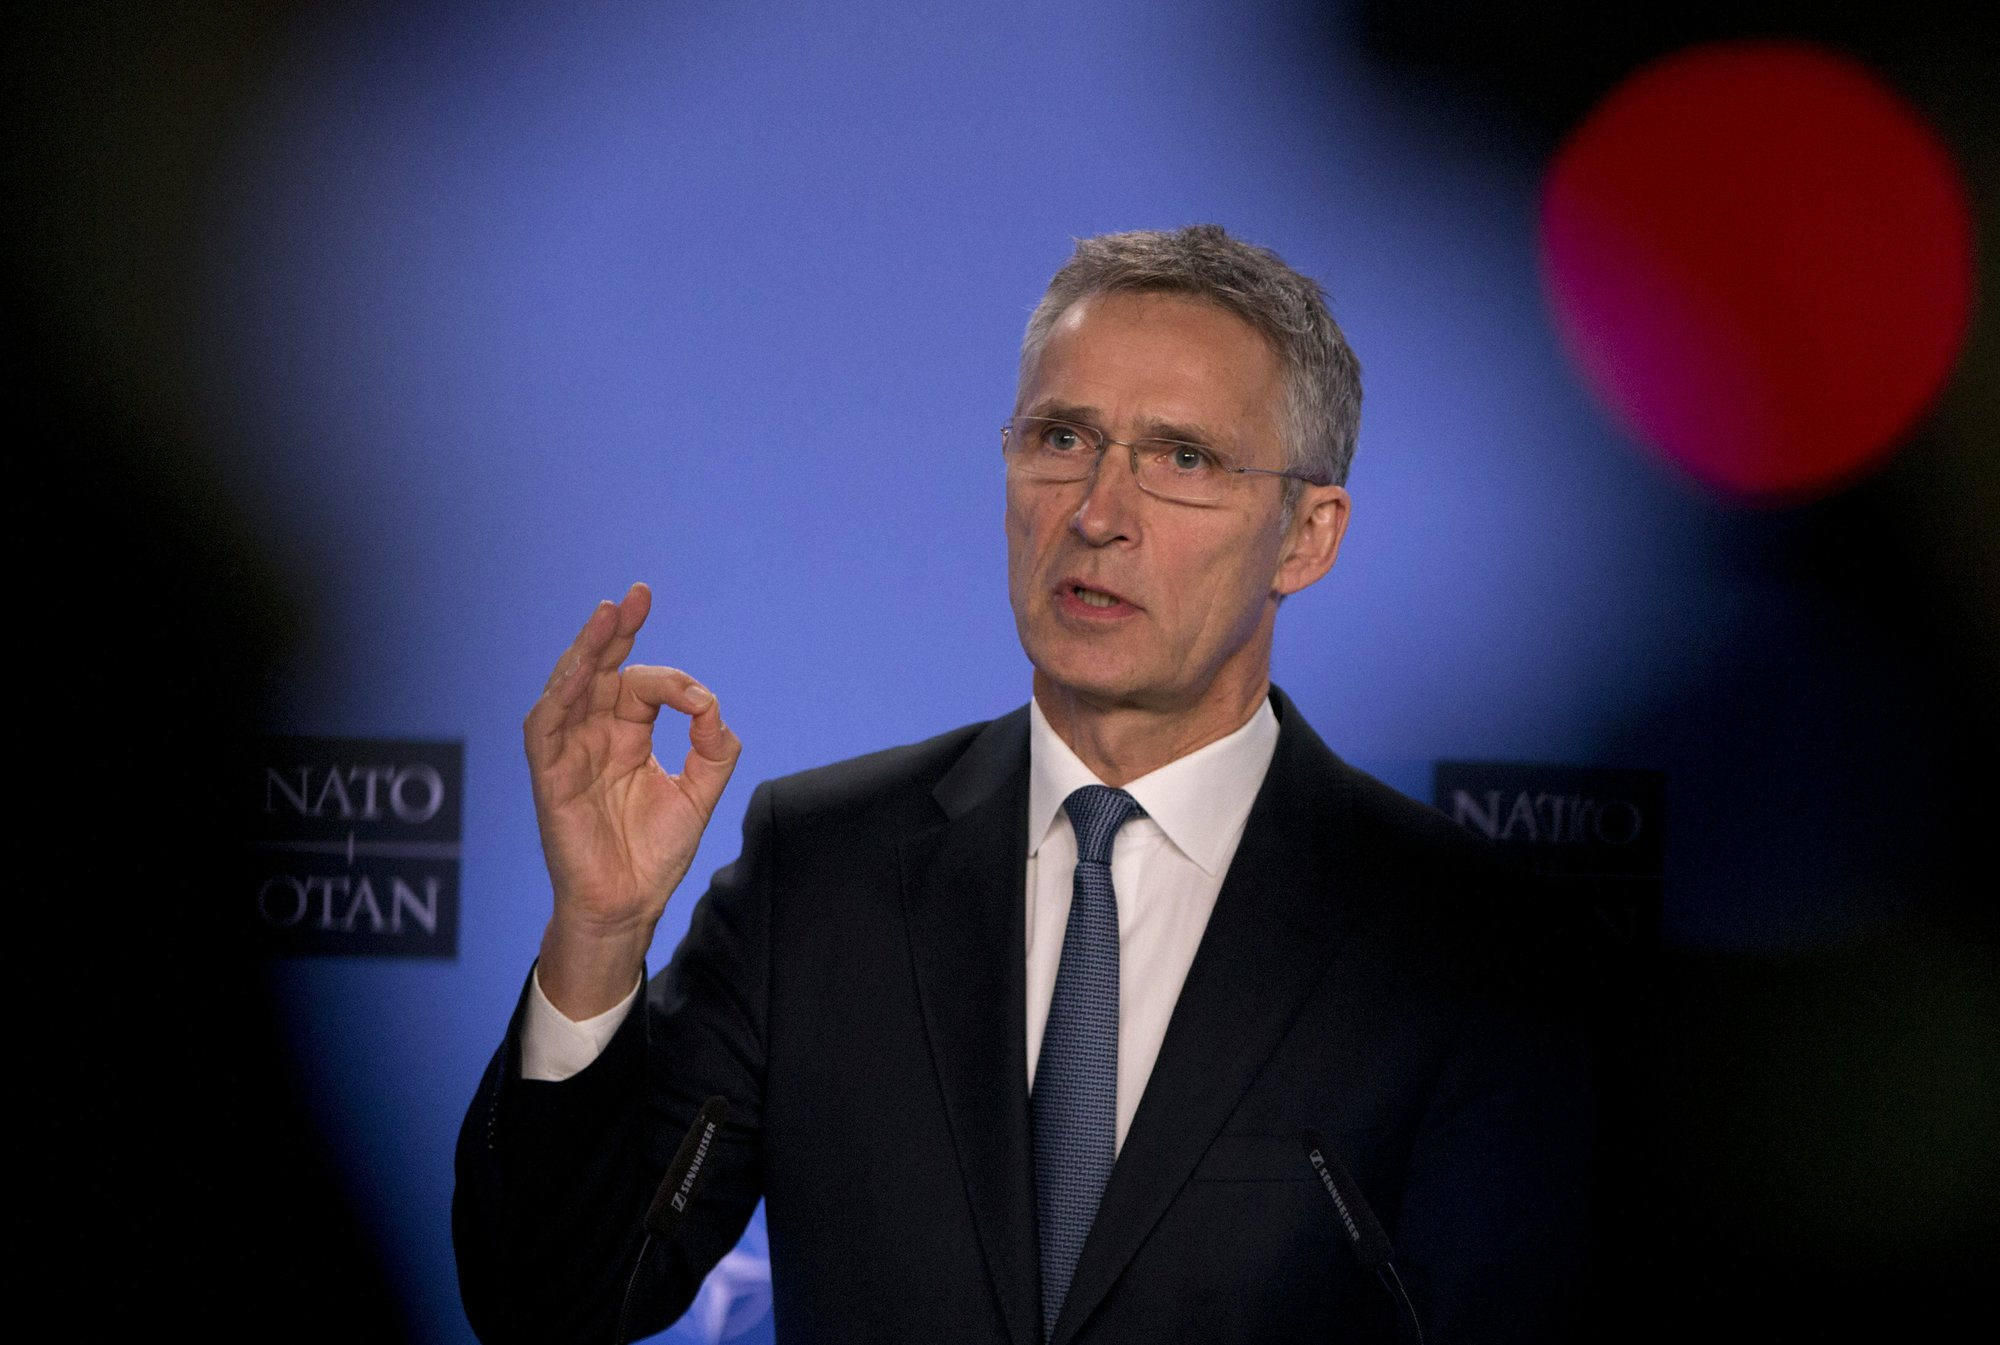 NATO chief says missile pact in danger after Russia talks